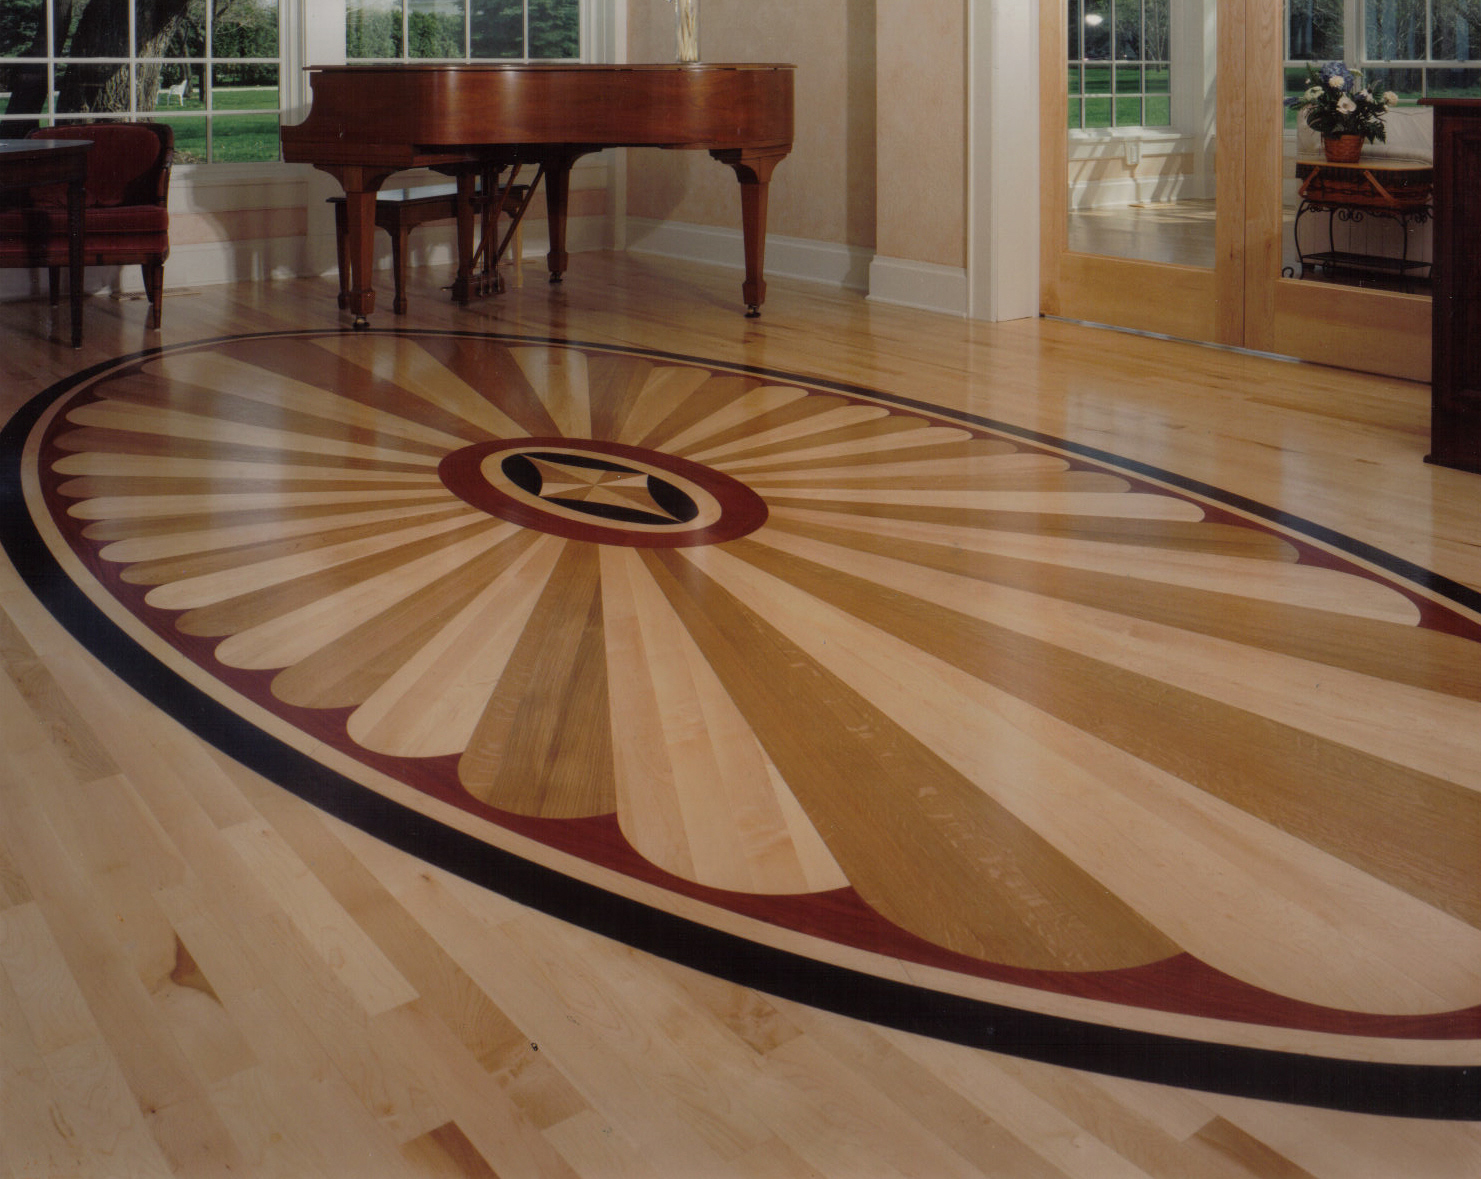 Motifs for Wood flooring design ideas